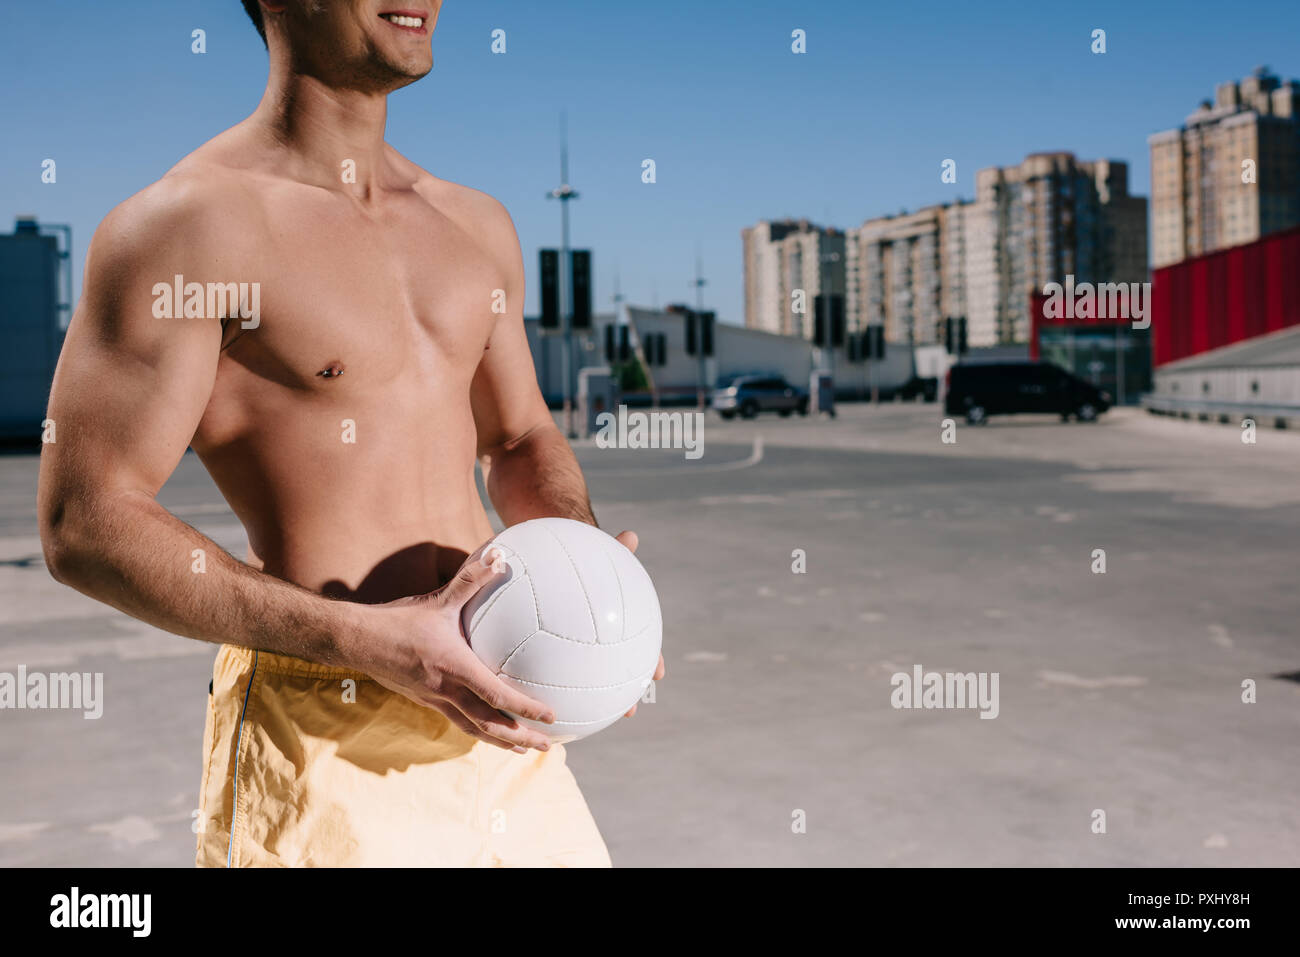 Cropped shot of young shirtless man holding volley-ball ball le parking gratuit Photo Stock